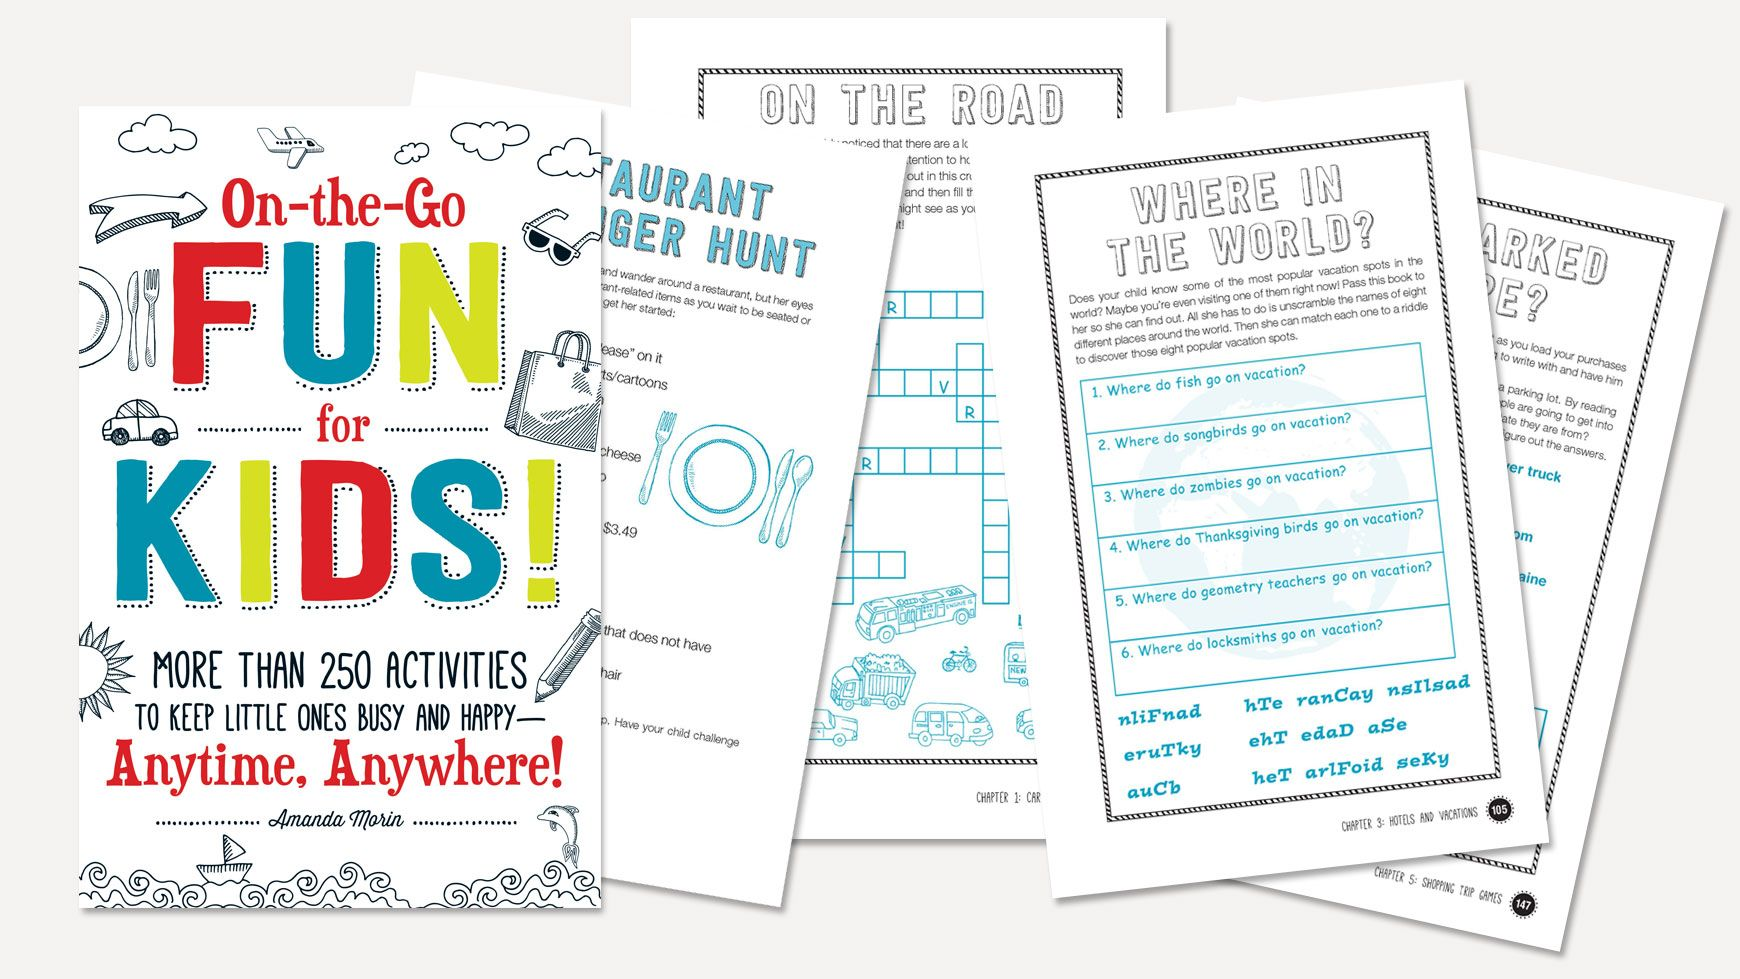 Fun And Educational Summer Vacation Downloads